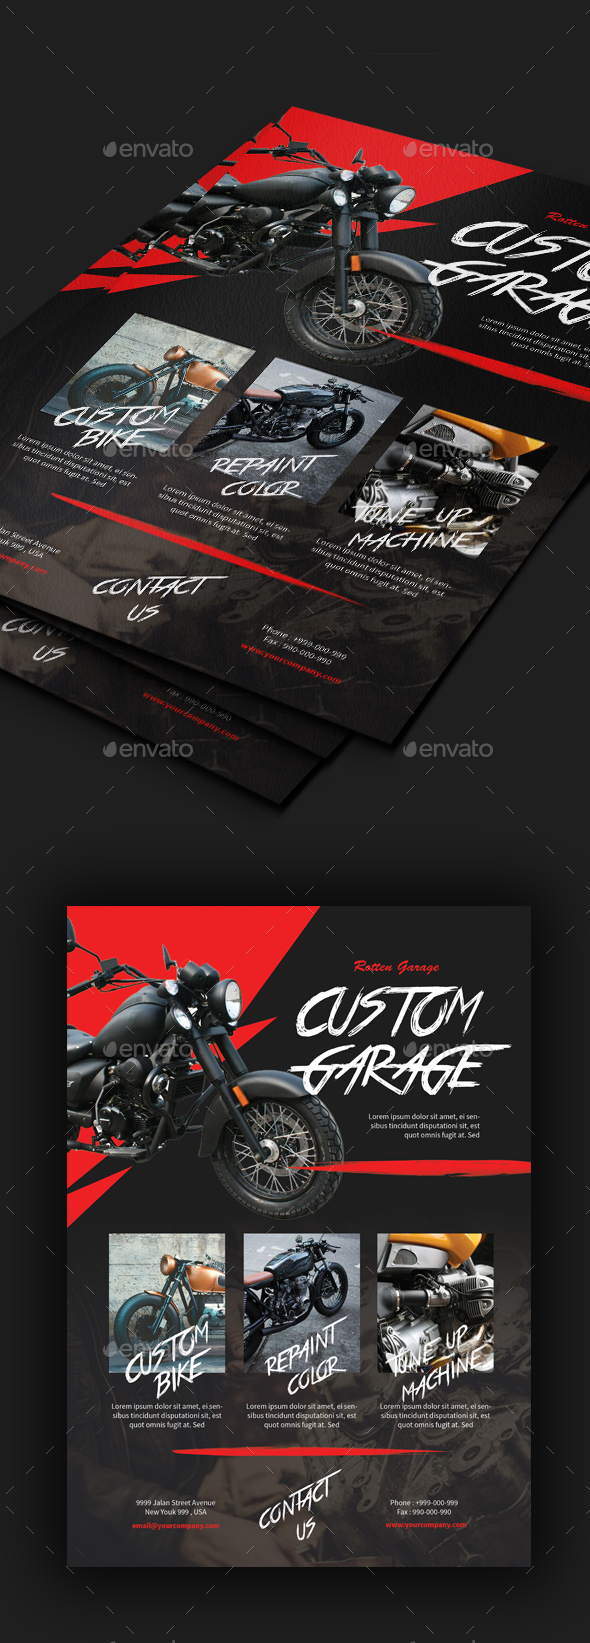 Motorcycle Custom Garage Flyer - Corporate Flyers